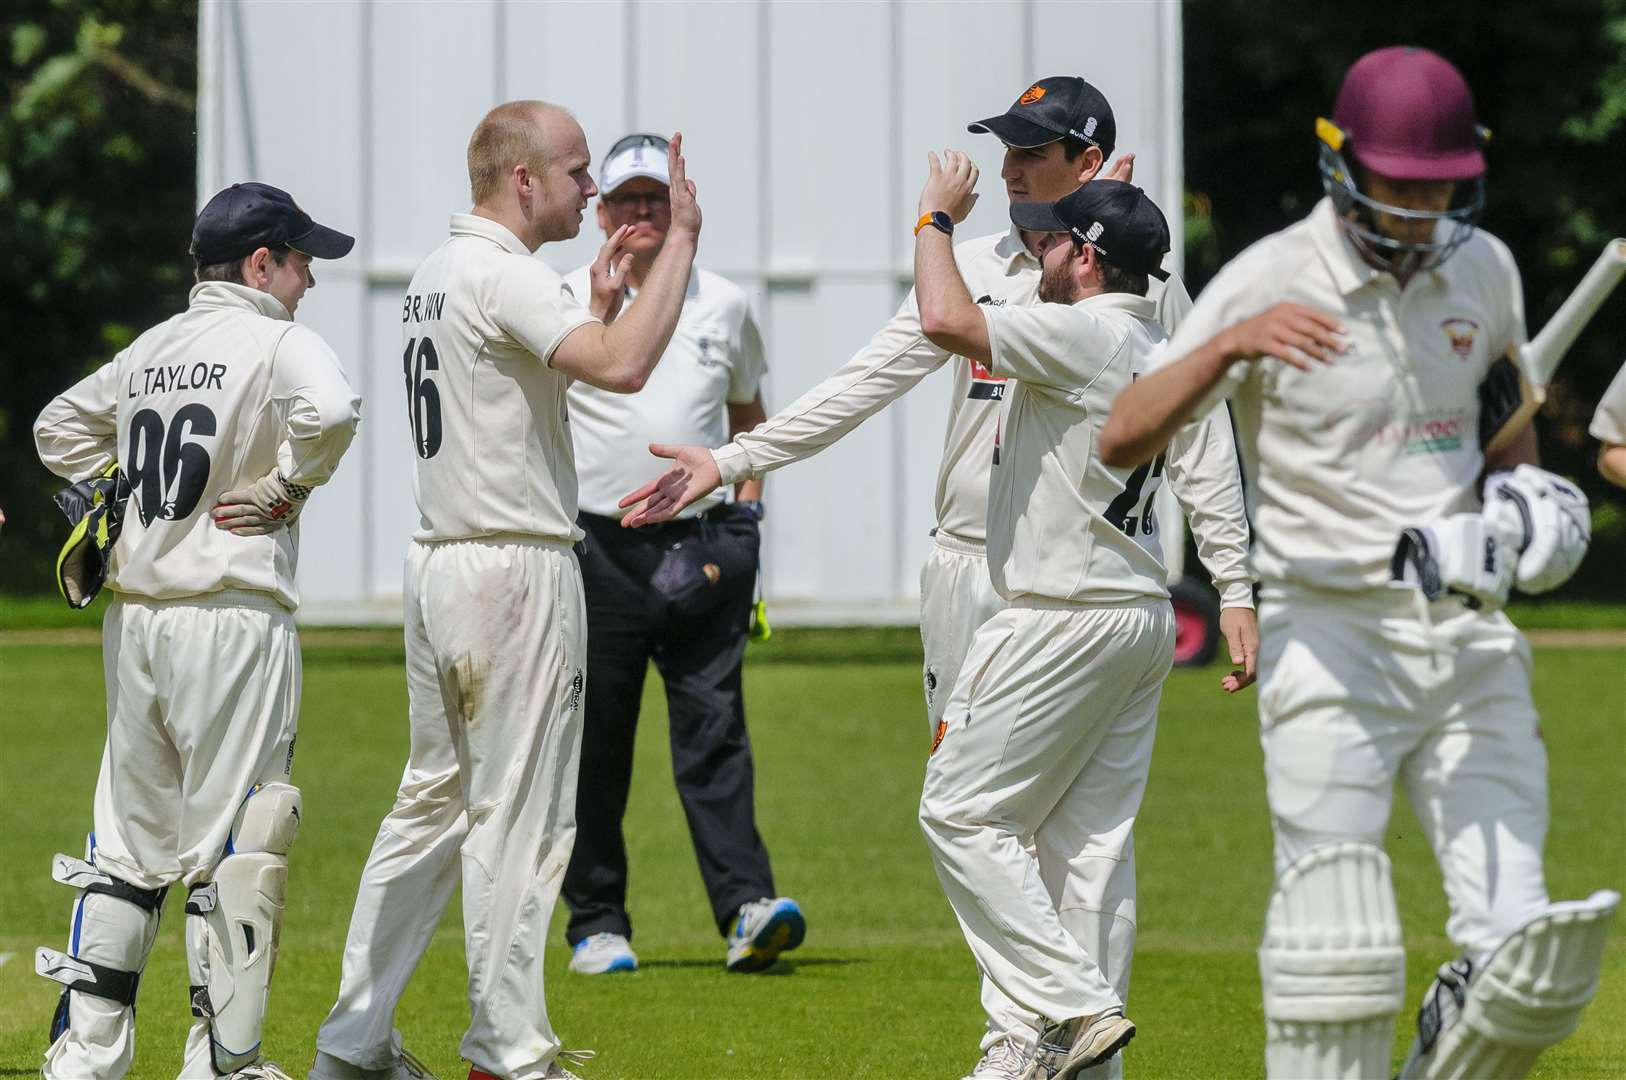 Diss (pictured celebrating a wicket earlier in the season) find themselves in the relegation zone after 10 matches